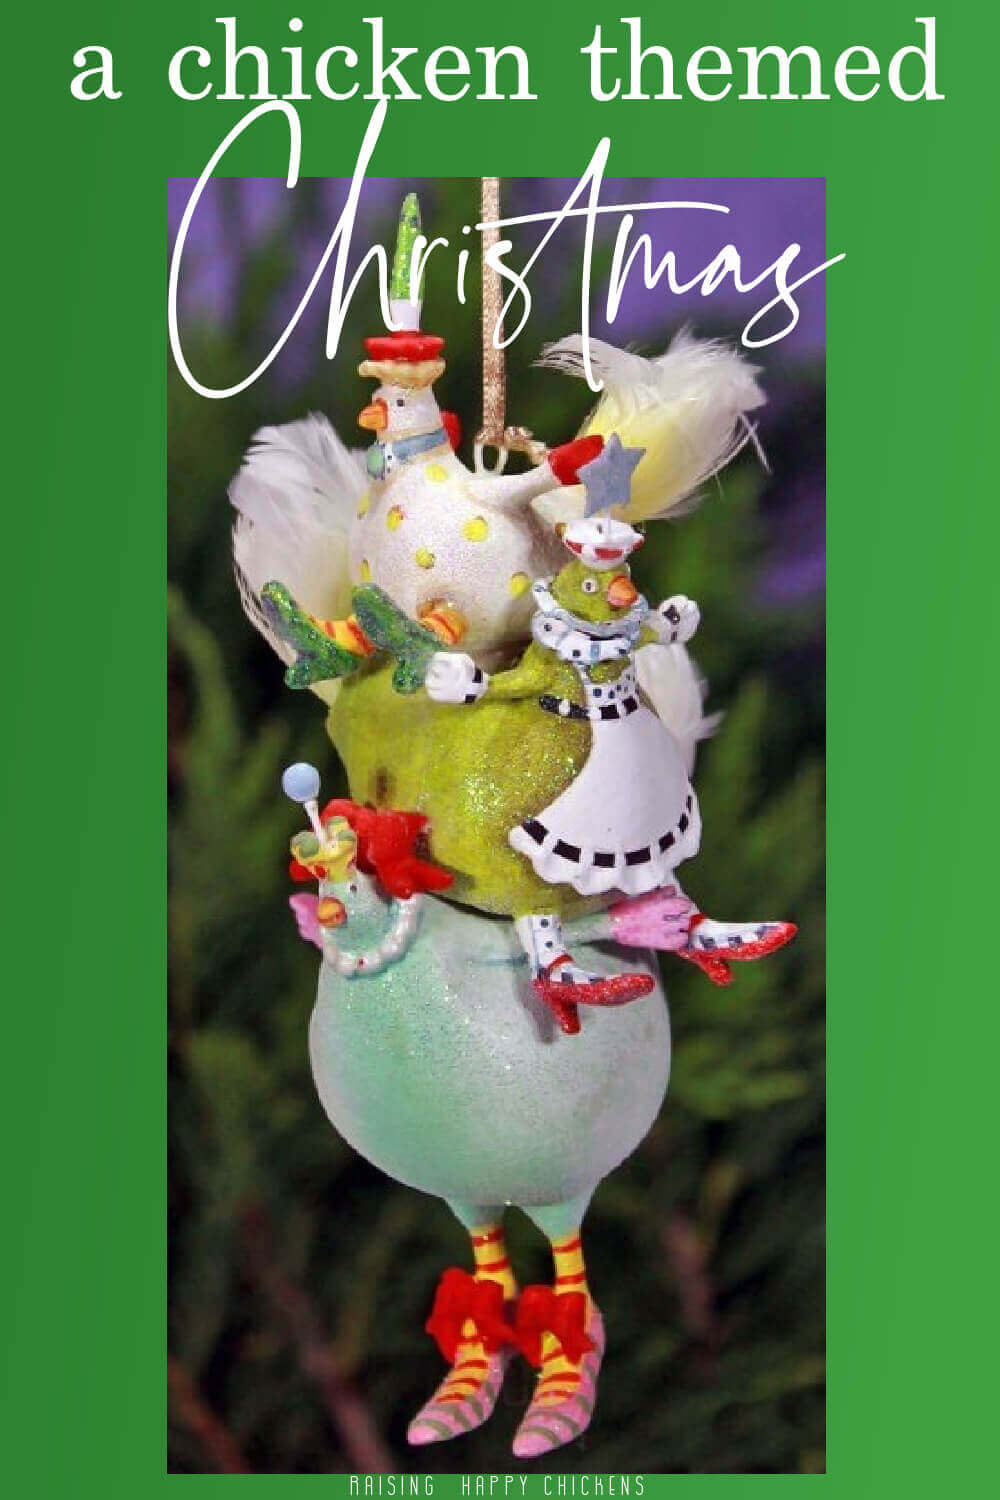 Looking for chicken-themed Christmas tree ornaments? Here's a great selection! #backyardchickens #chickenthemedgifts #tistheseason #raisinghappychickens